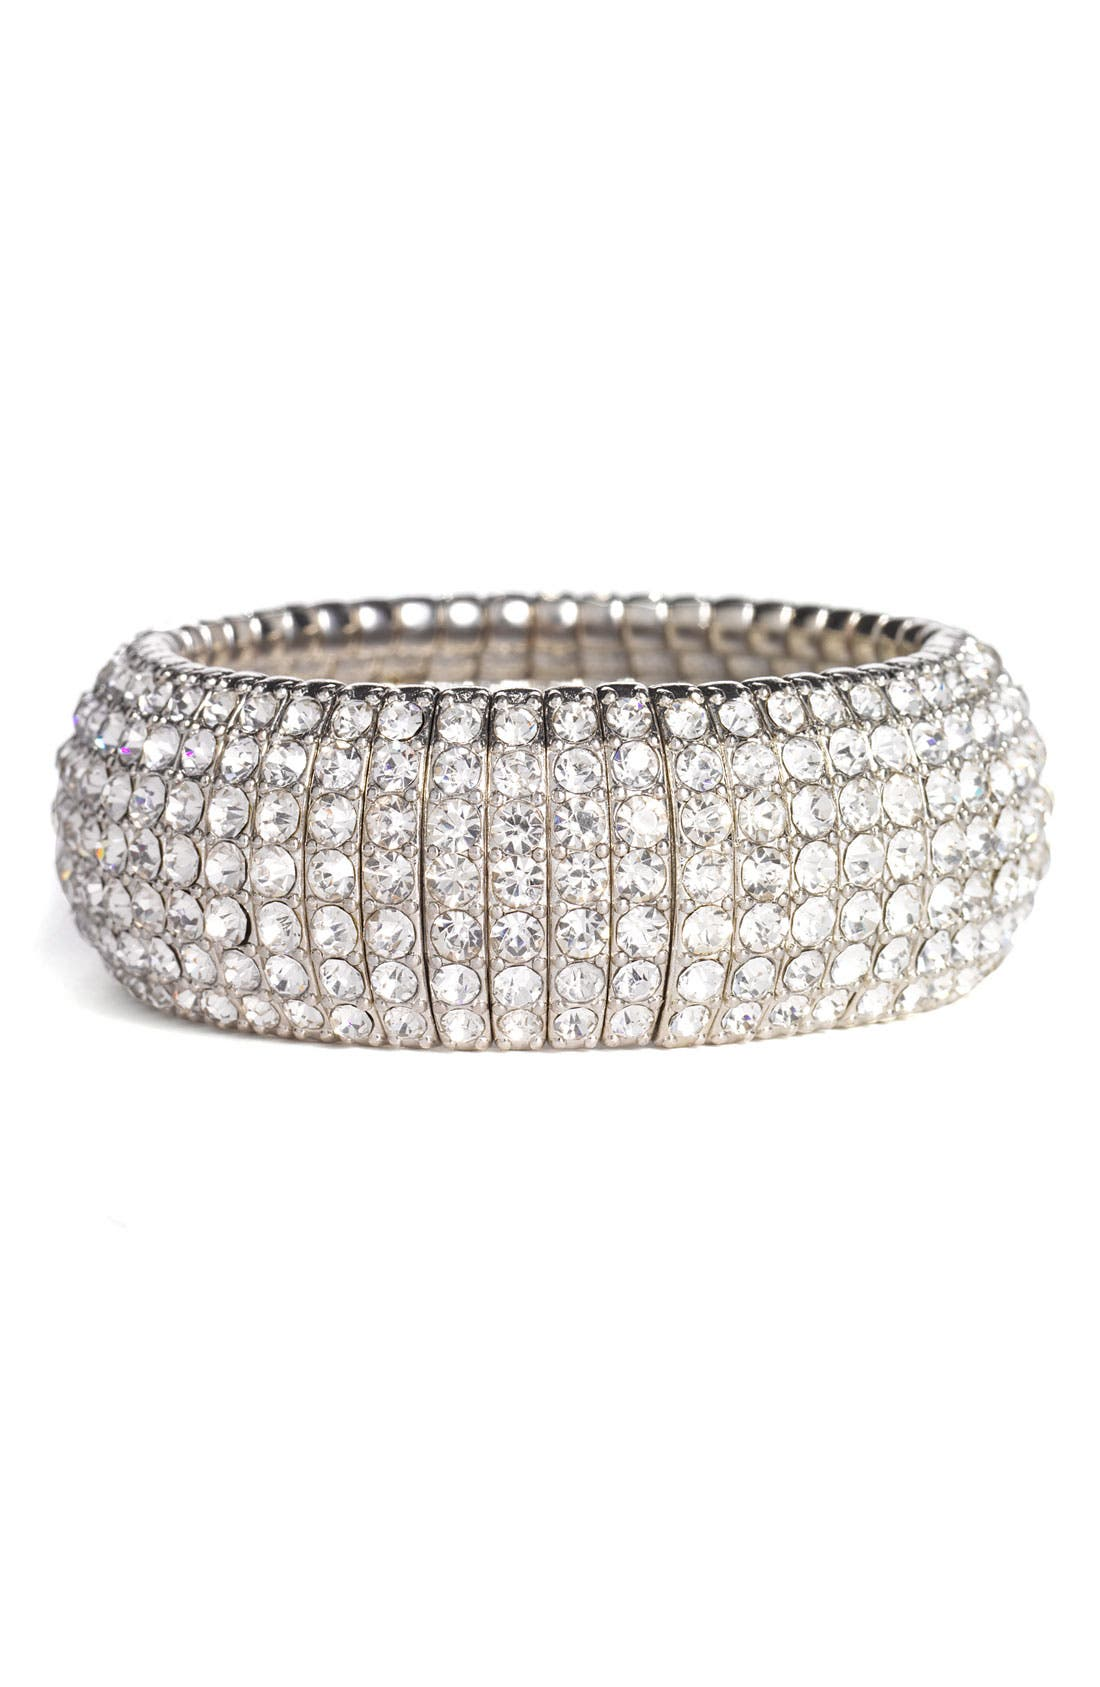 Main Image - Tasha Crystal Stretch Bracelet